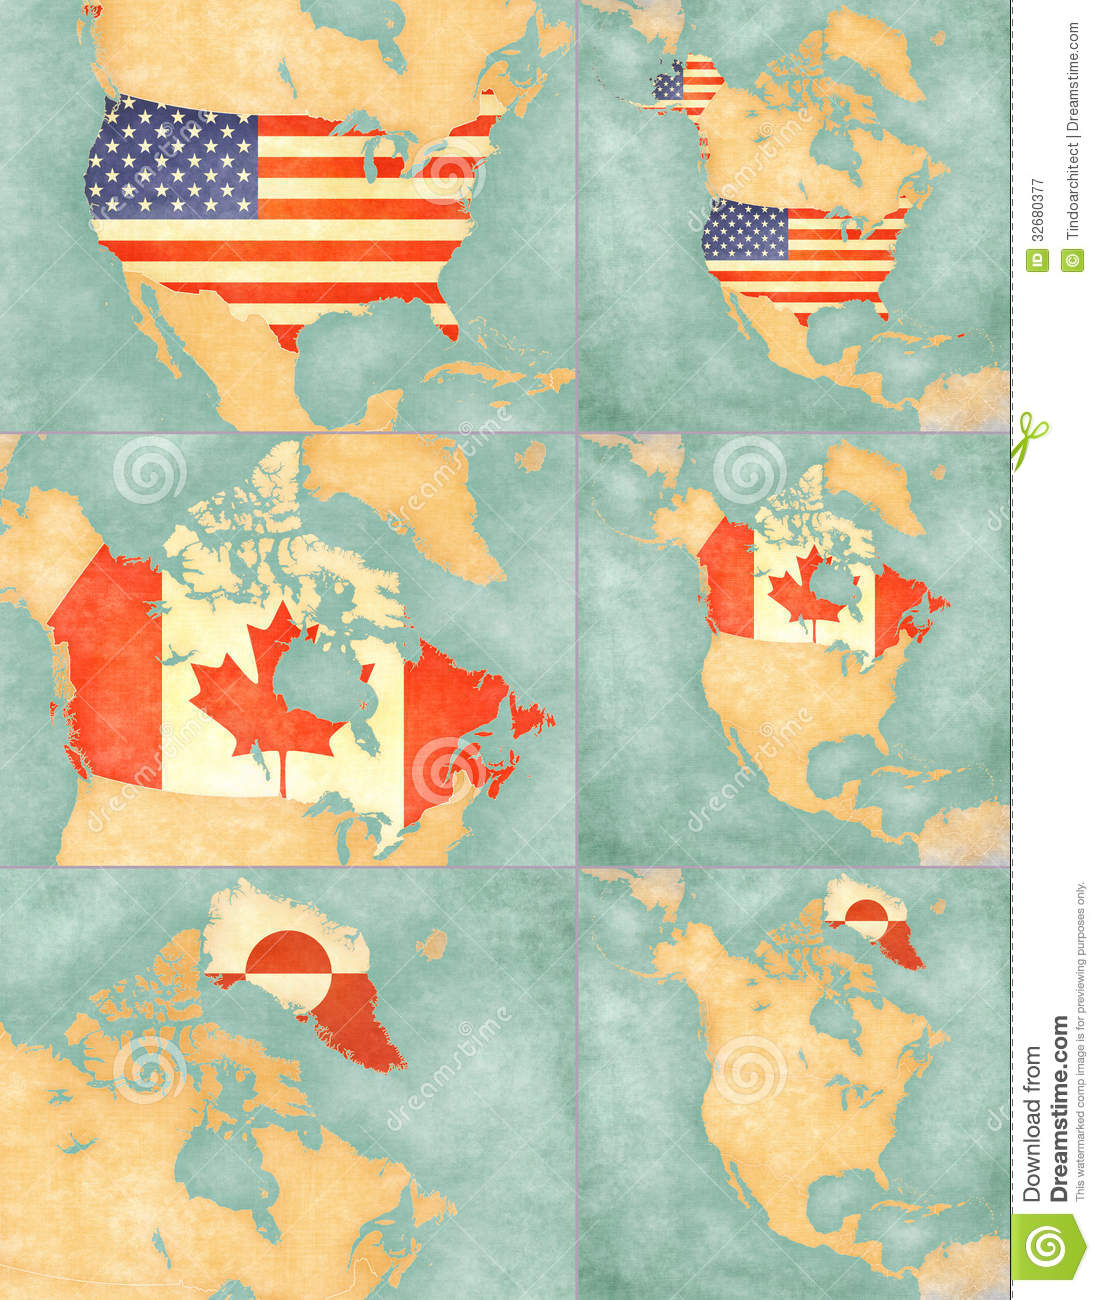 America Canada Continent Greenland Grunge Map North Outline Usa